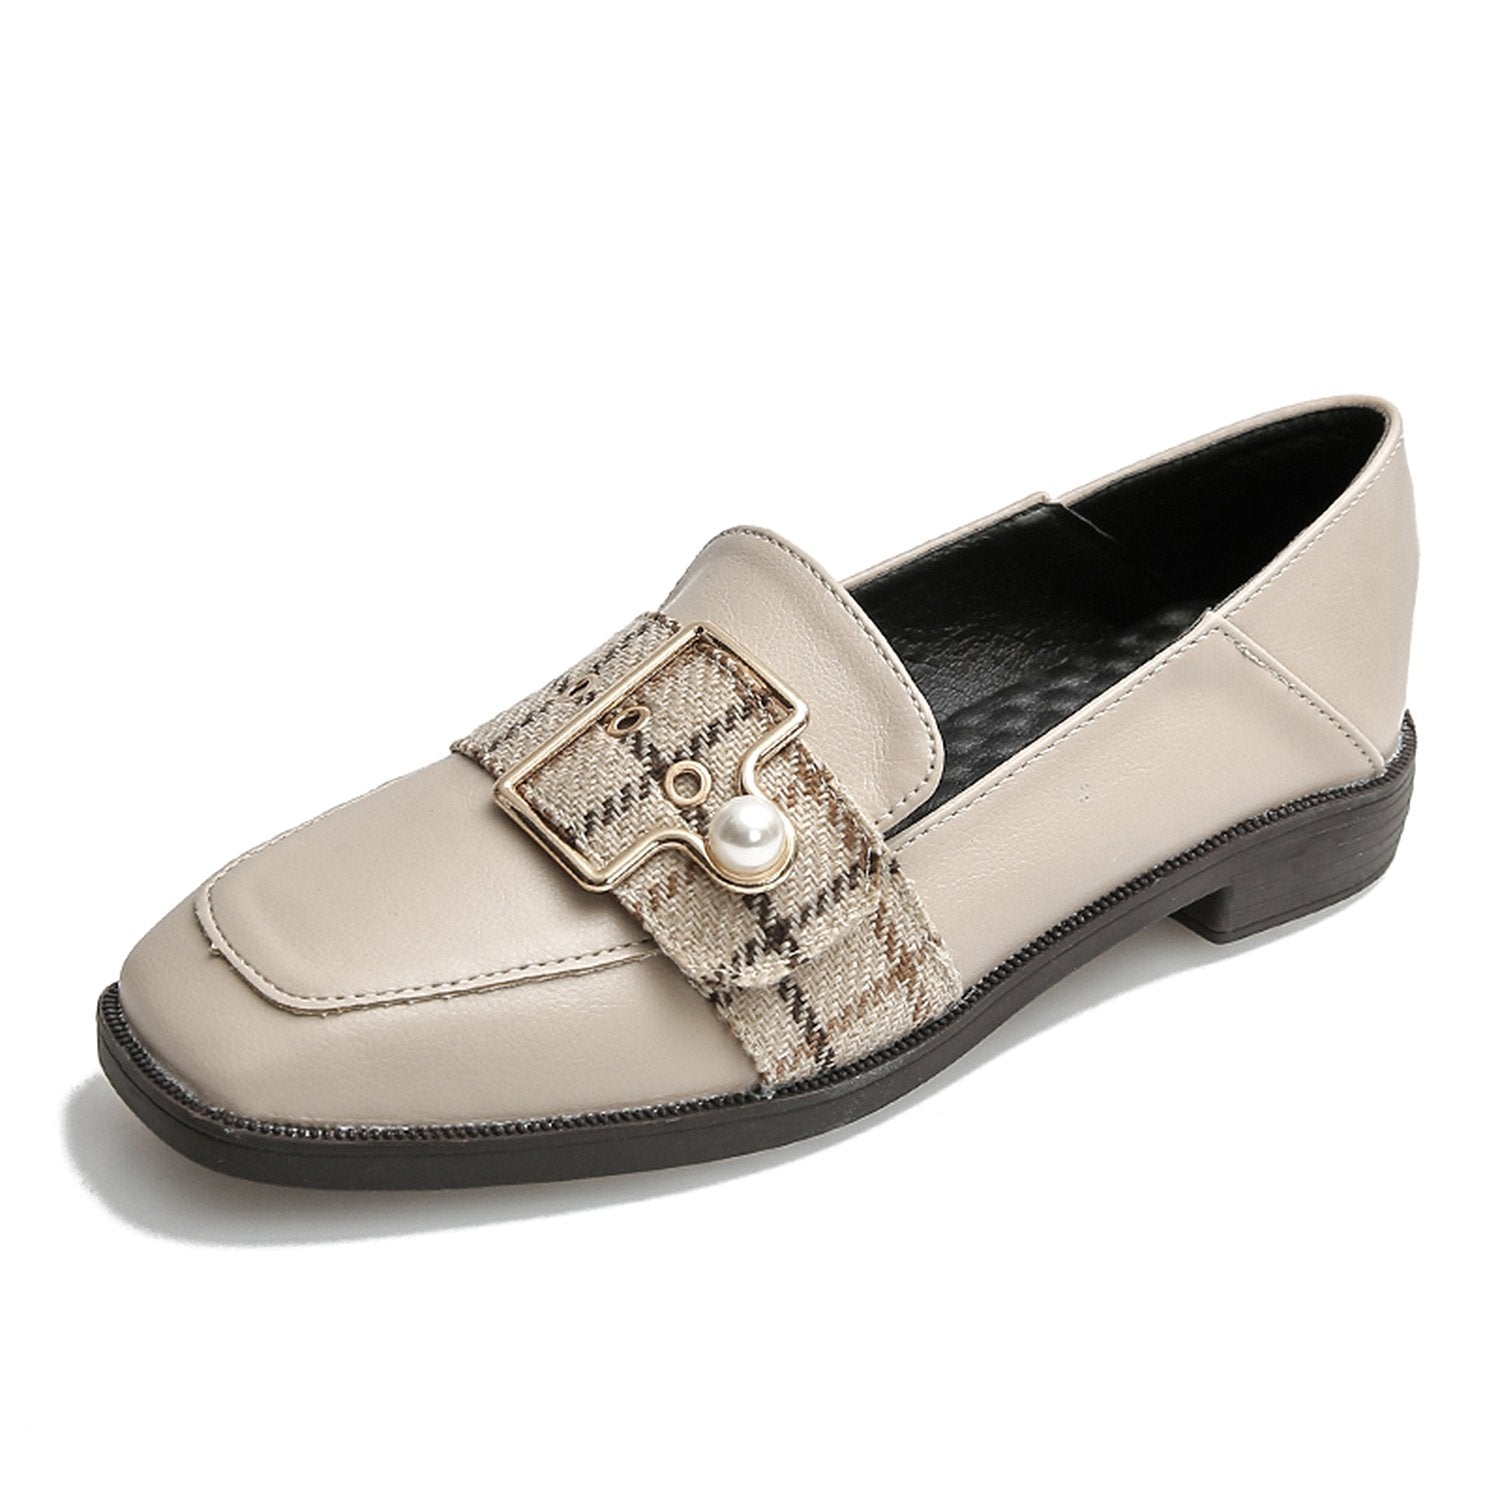 Flat Square Head Low-heel Leather Shoes